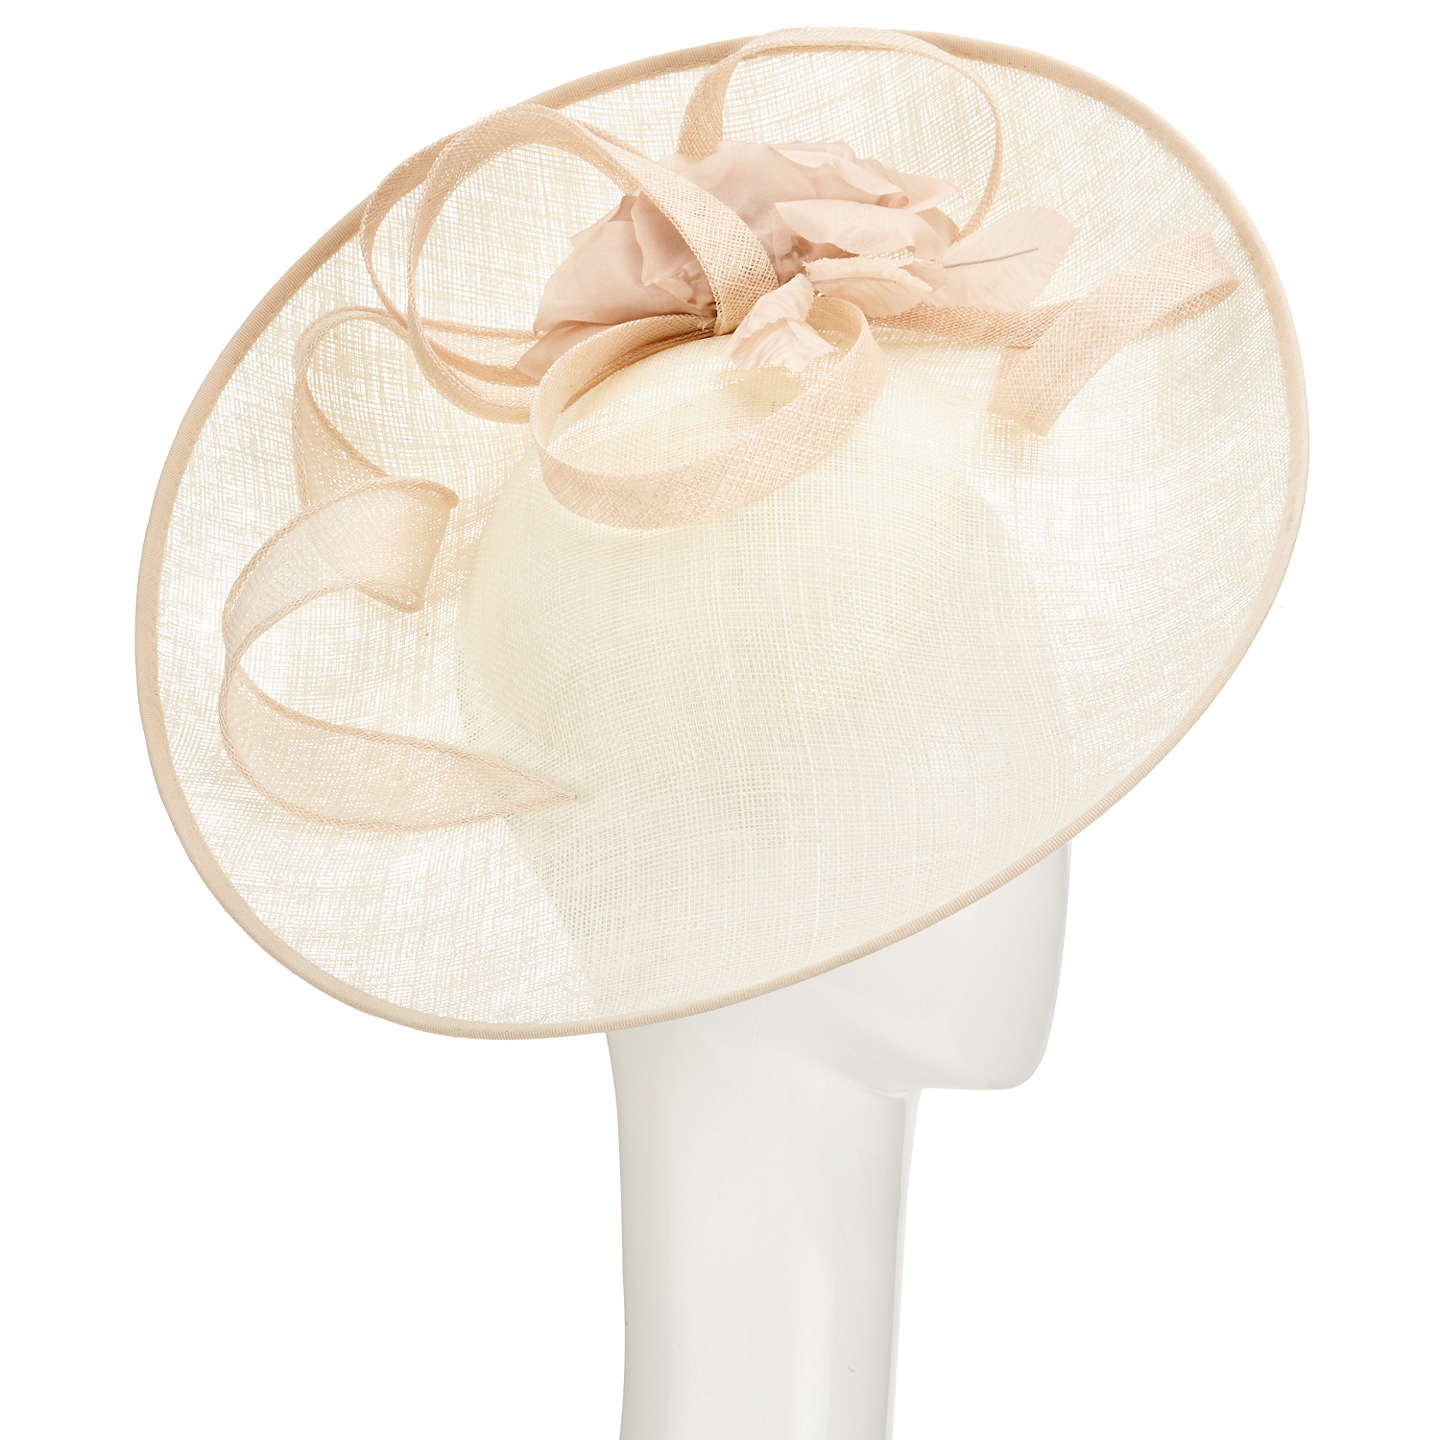 John lewis riya side up silk flower occasion hat cream at john lewis buyjohn lewis riya side up silk flower occasion hat cream online at johnlewis mightylinksfo